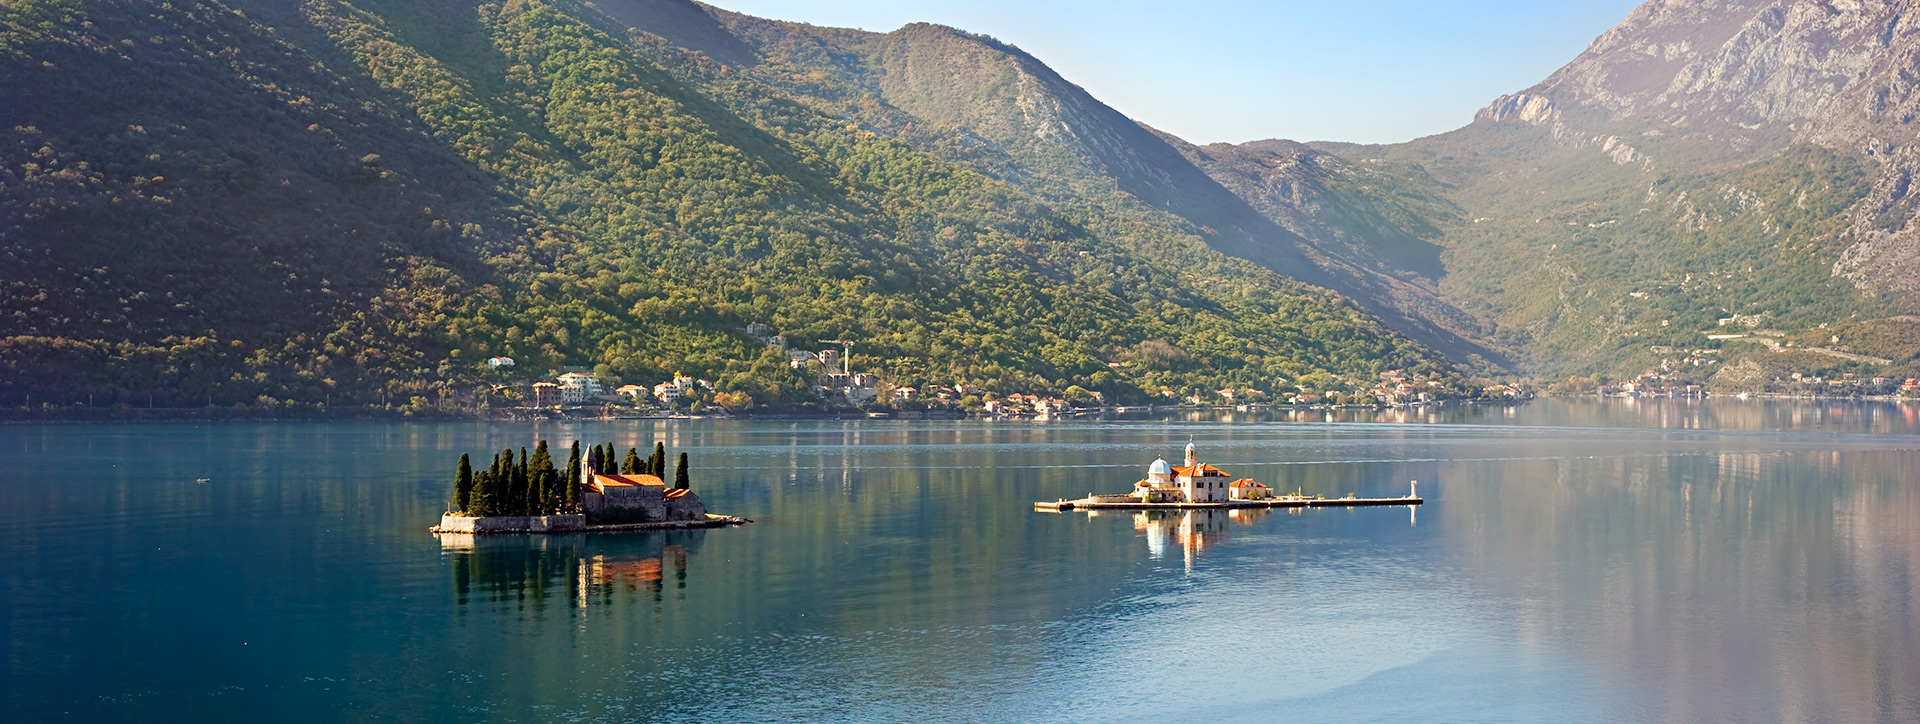 The Islands of St. George and Virgin on the Reef, opposite Perast, Montenegro